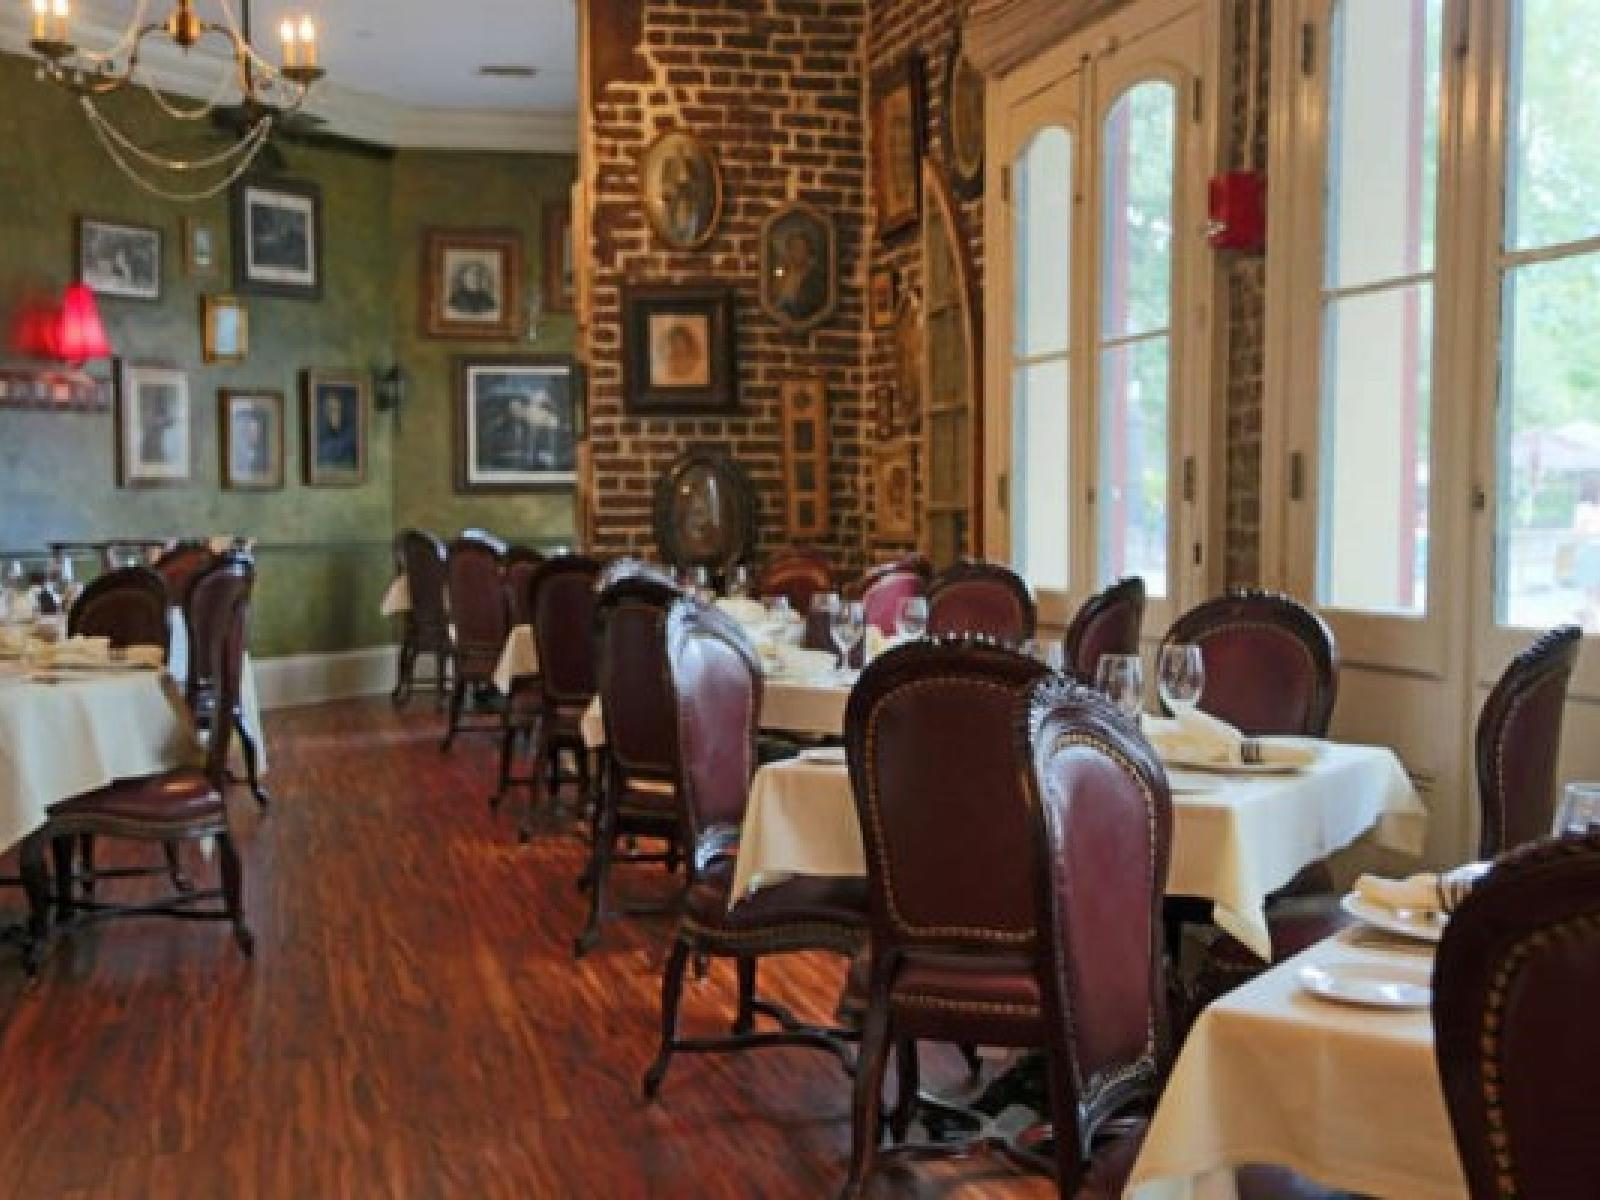 Dining area of Muriel's Jackson Square near Hotel St. Pierre